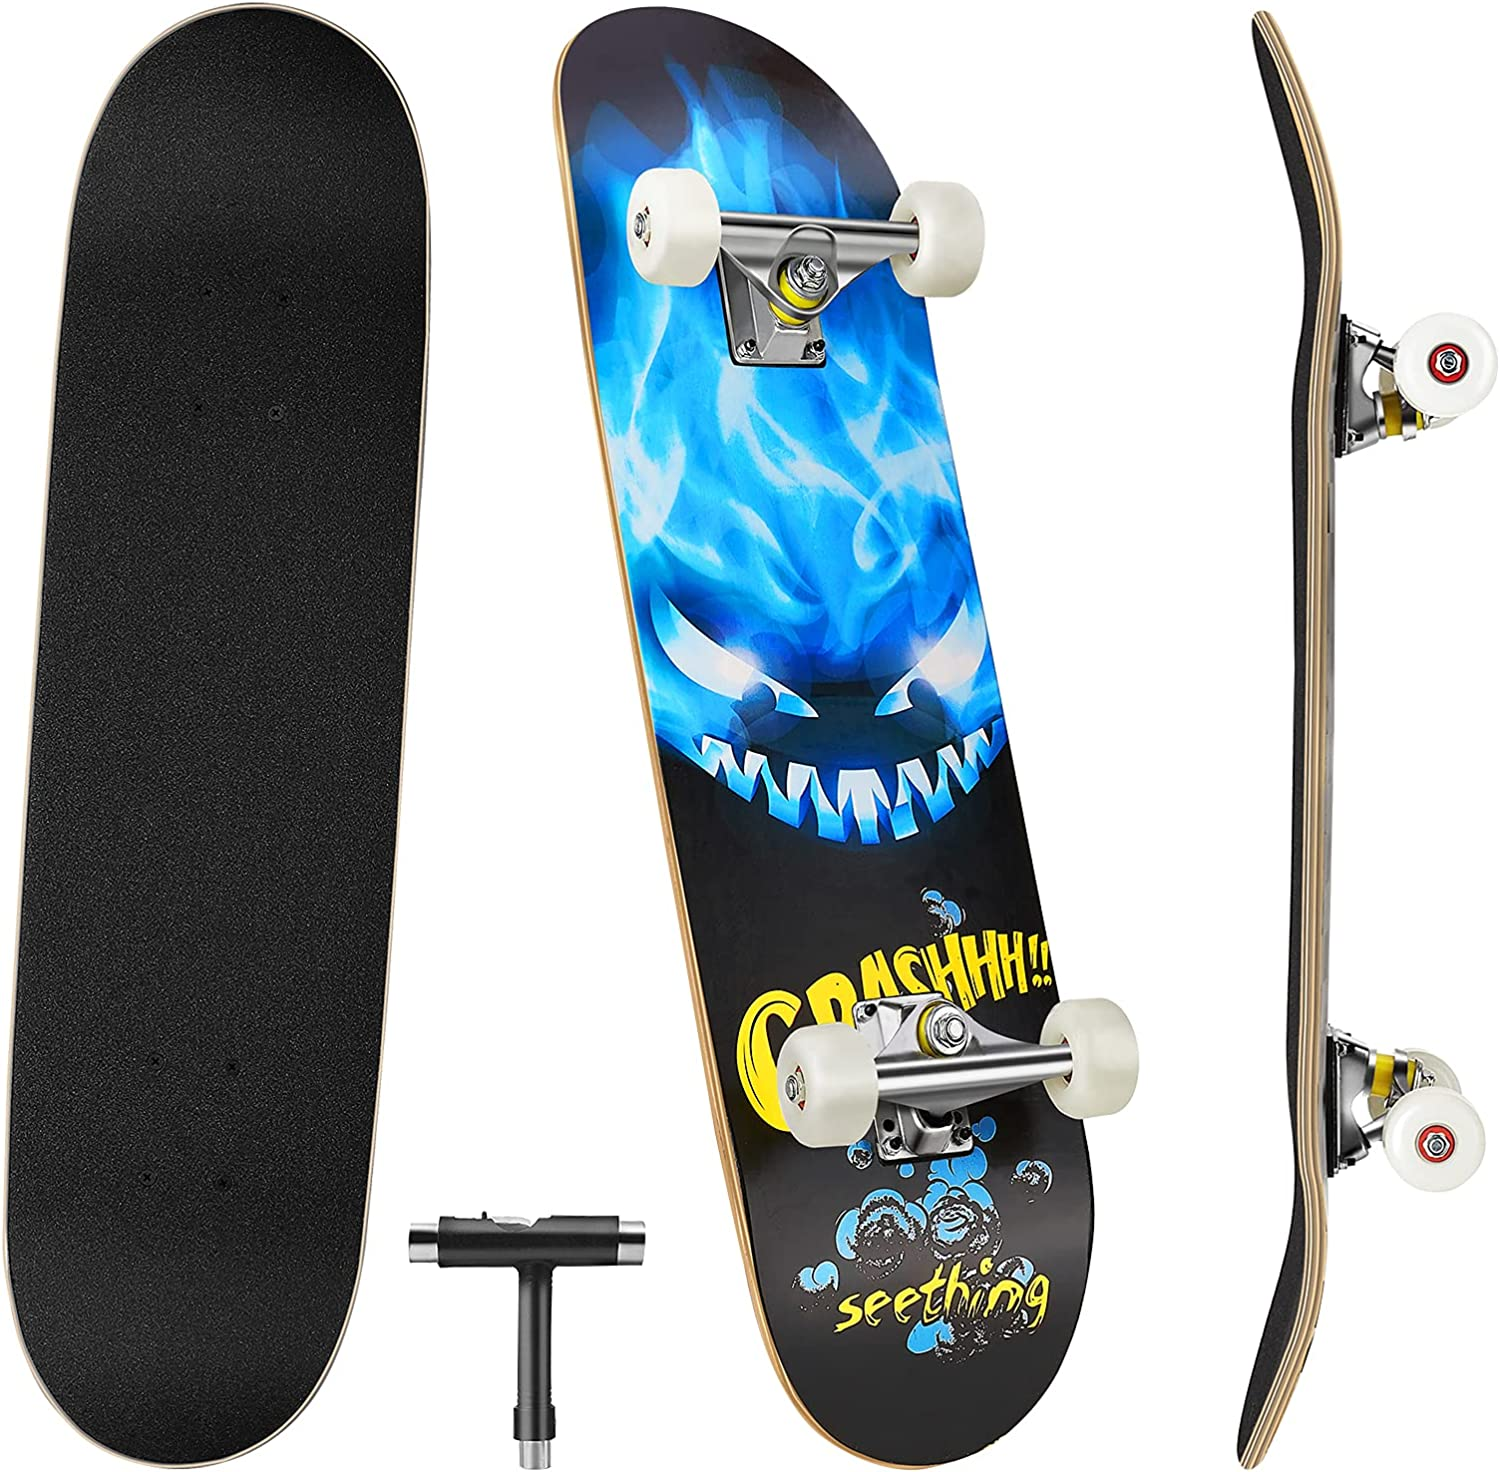 Skateboards for Beginners, 31'' x 8'' Complete Standard Skate Boards with 7 Layers Canadian Maple, Double Kick Concave Skateboards for Kids Youth Teens Man and Women : Sports & Outdoors